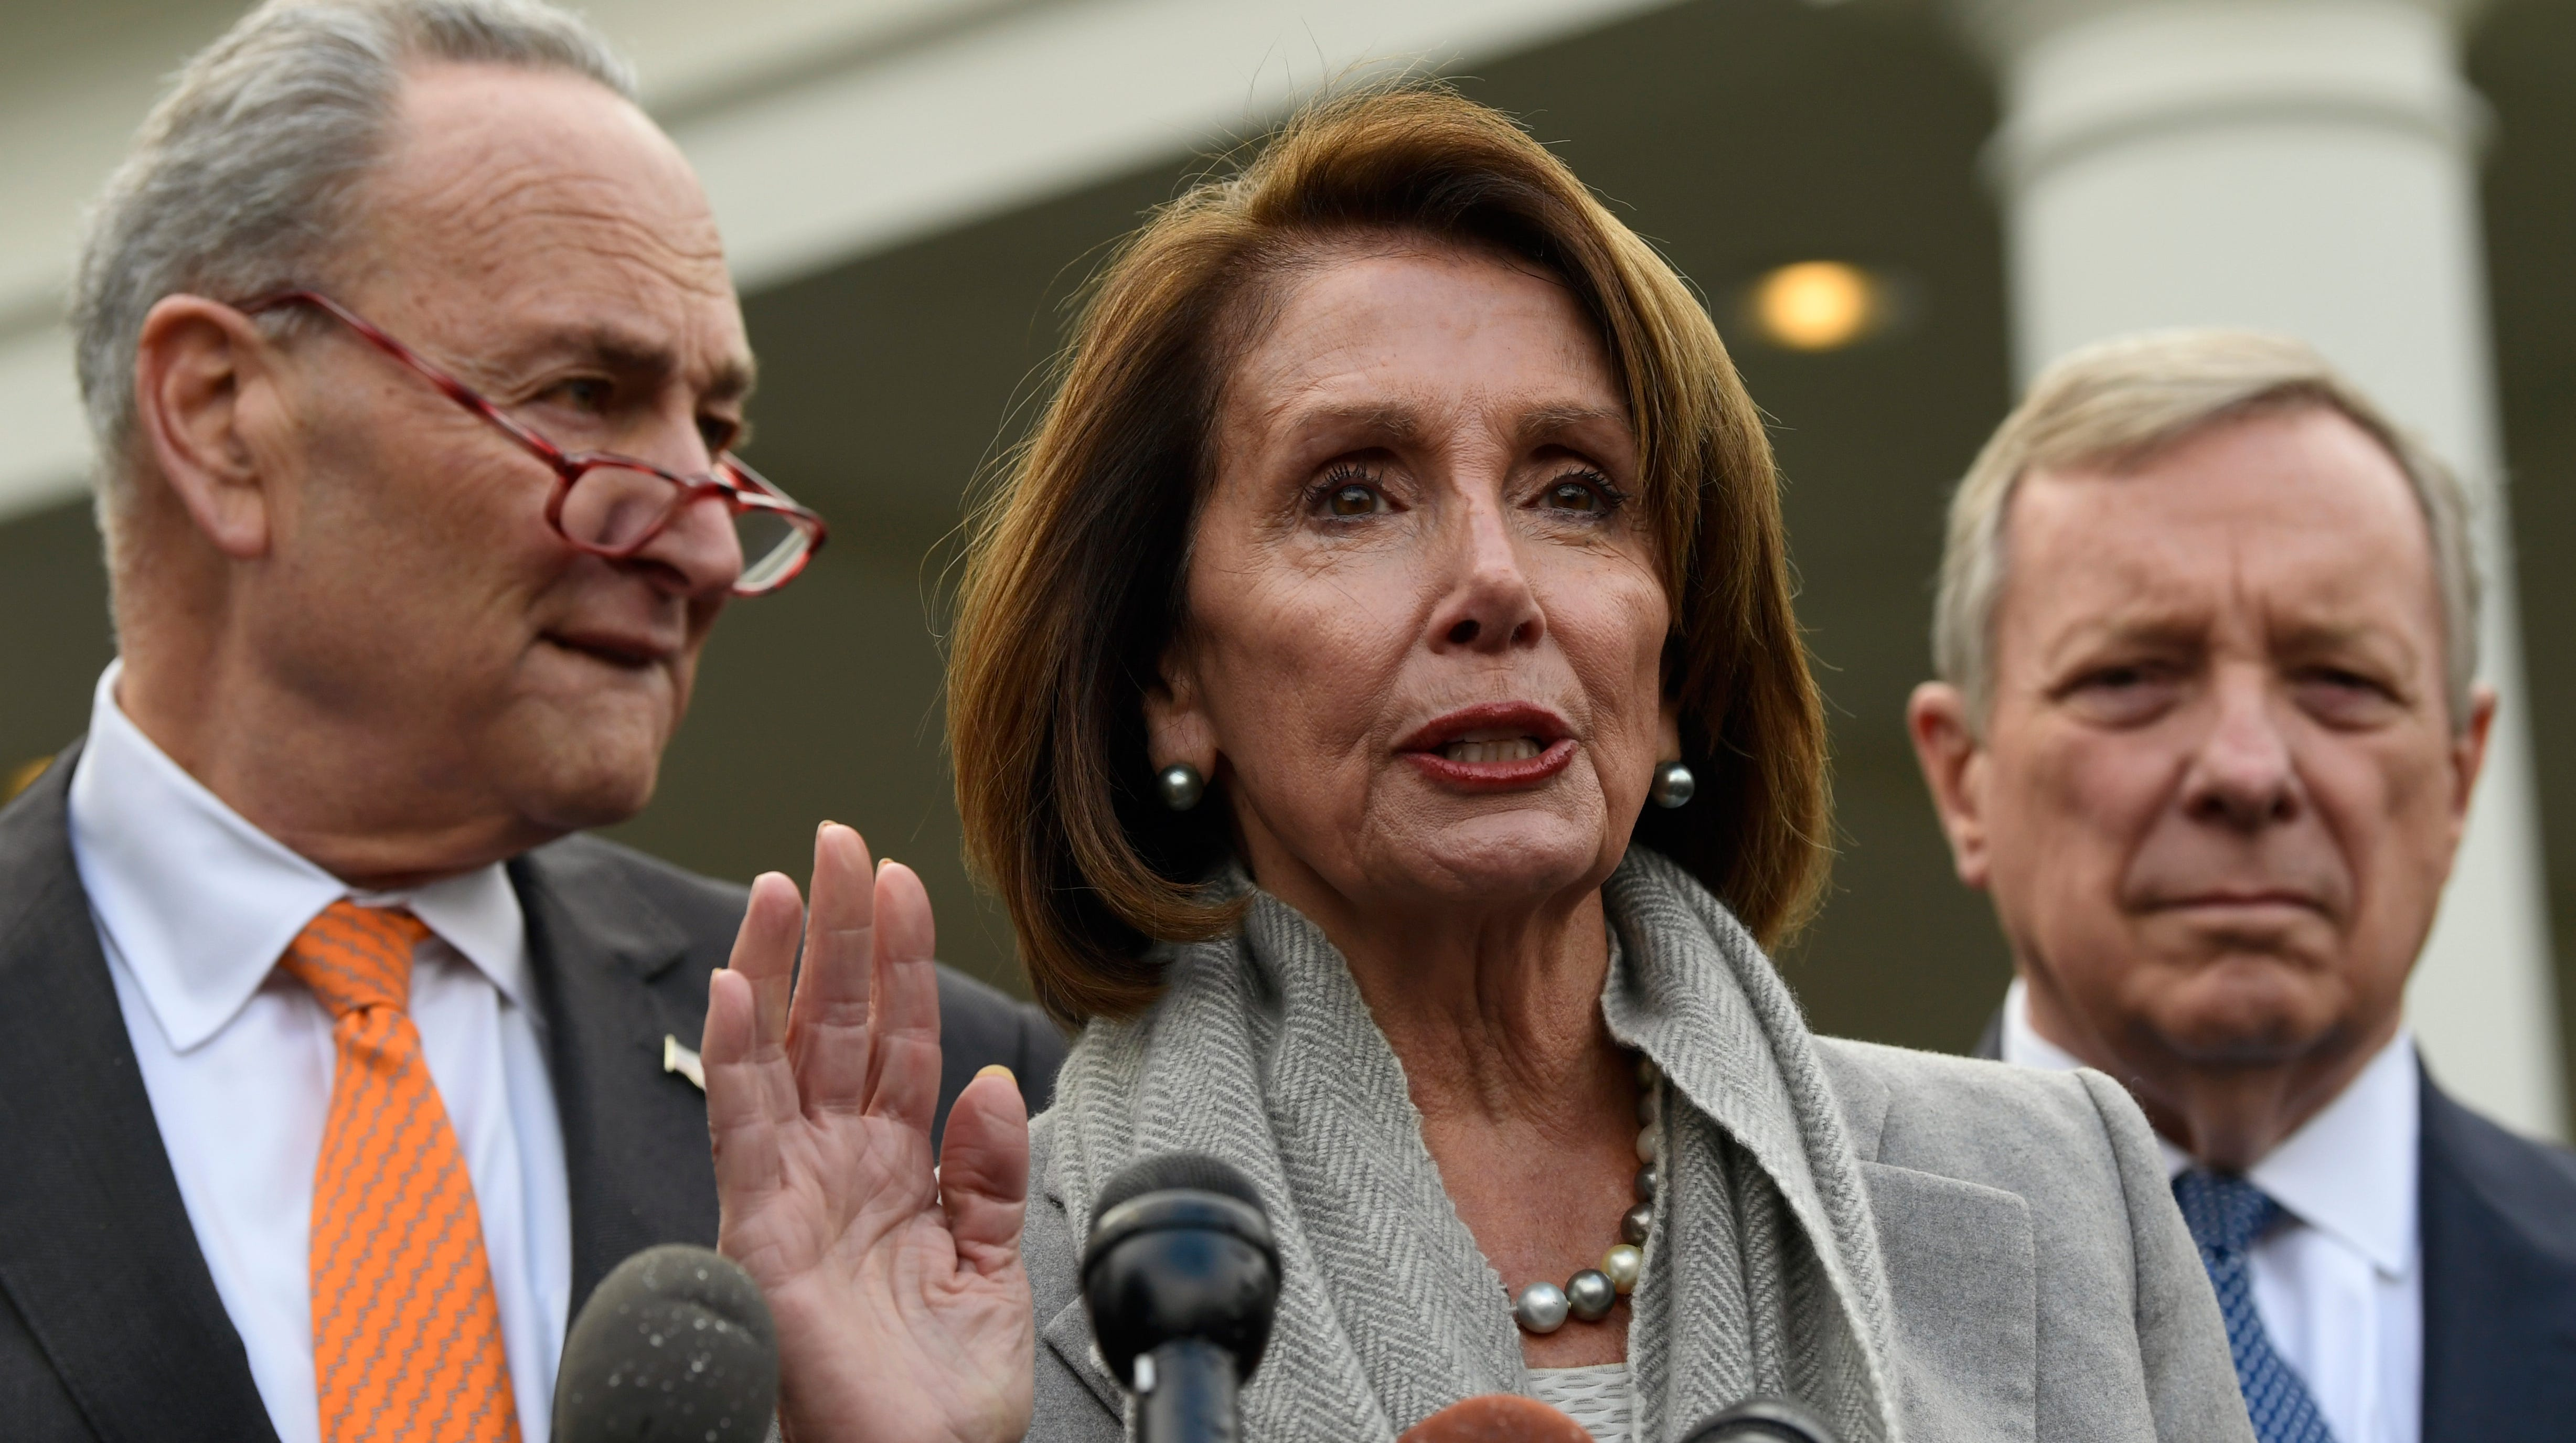 House Speaker Nancy Pelosi of Calif., center, speaks about her oath of office as she stands next to Senate Minority Leader Sen. Chuck Schumer of N.Y., left, and Sen. Dick Durbin, D-Ill., right, following their meeting with President Donald Trump at the White House in Washington, Wednesday, Jan. 9, 2019.